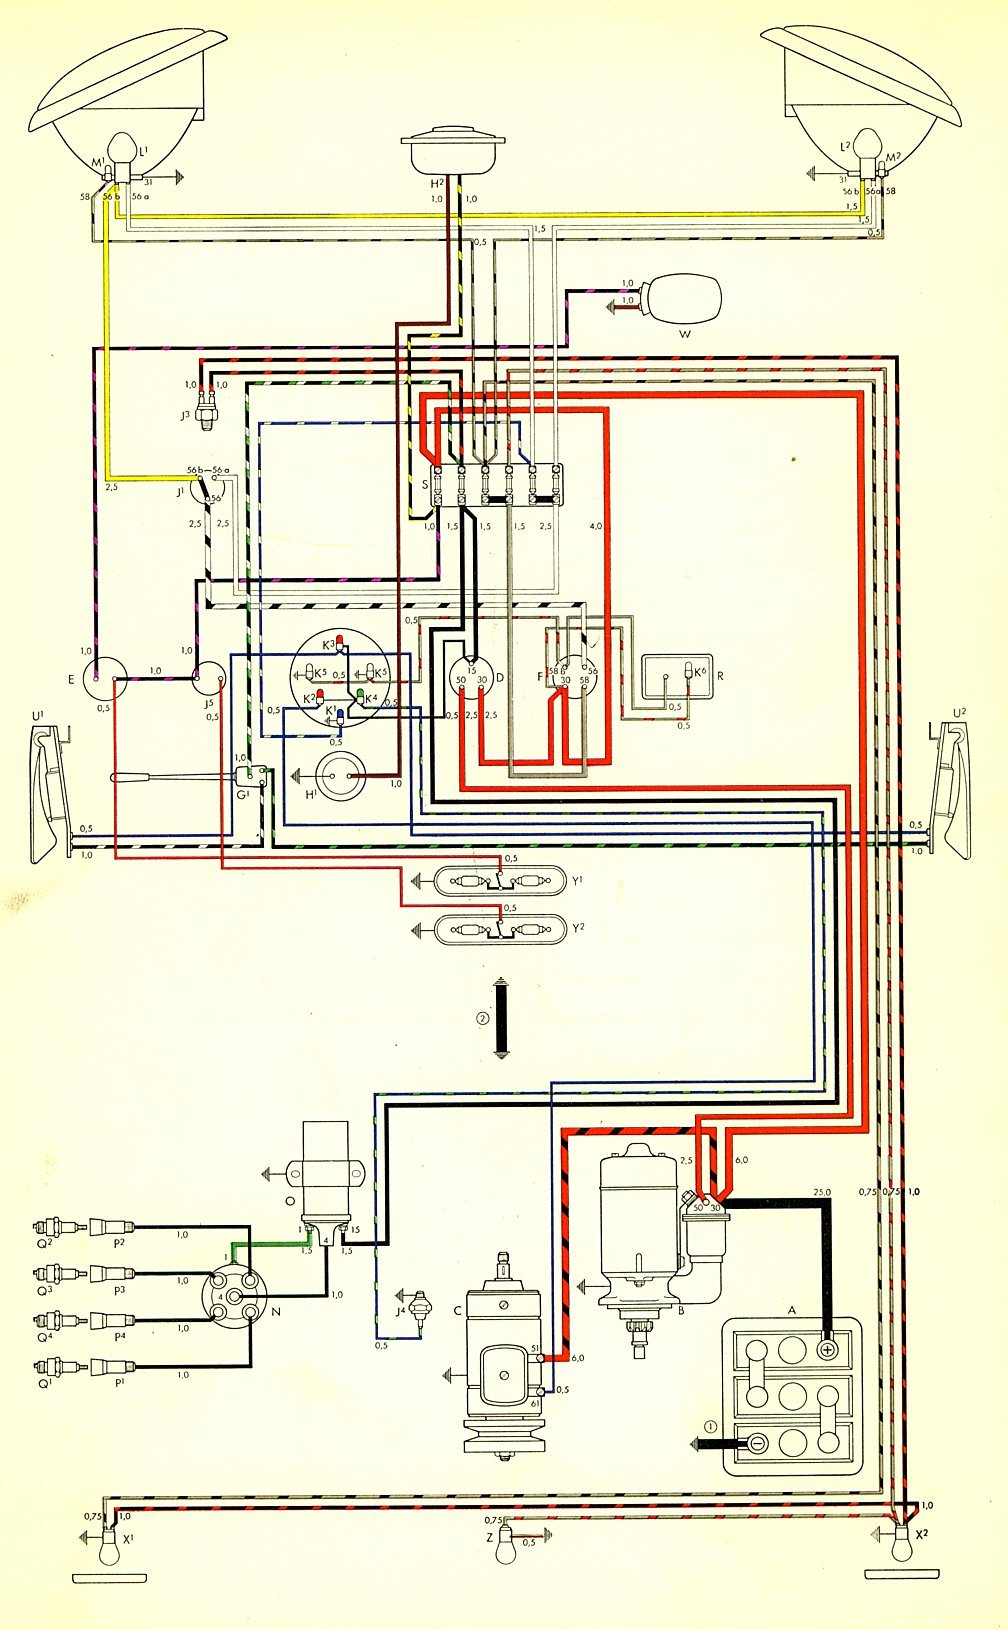 bus_59 bus wiring diagram vw wiring harness diagram \u2022 wiring diagrams j 1970 vw bus fuse box at gsmx.co